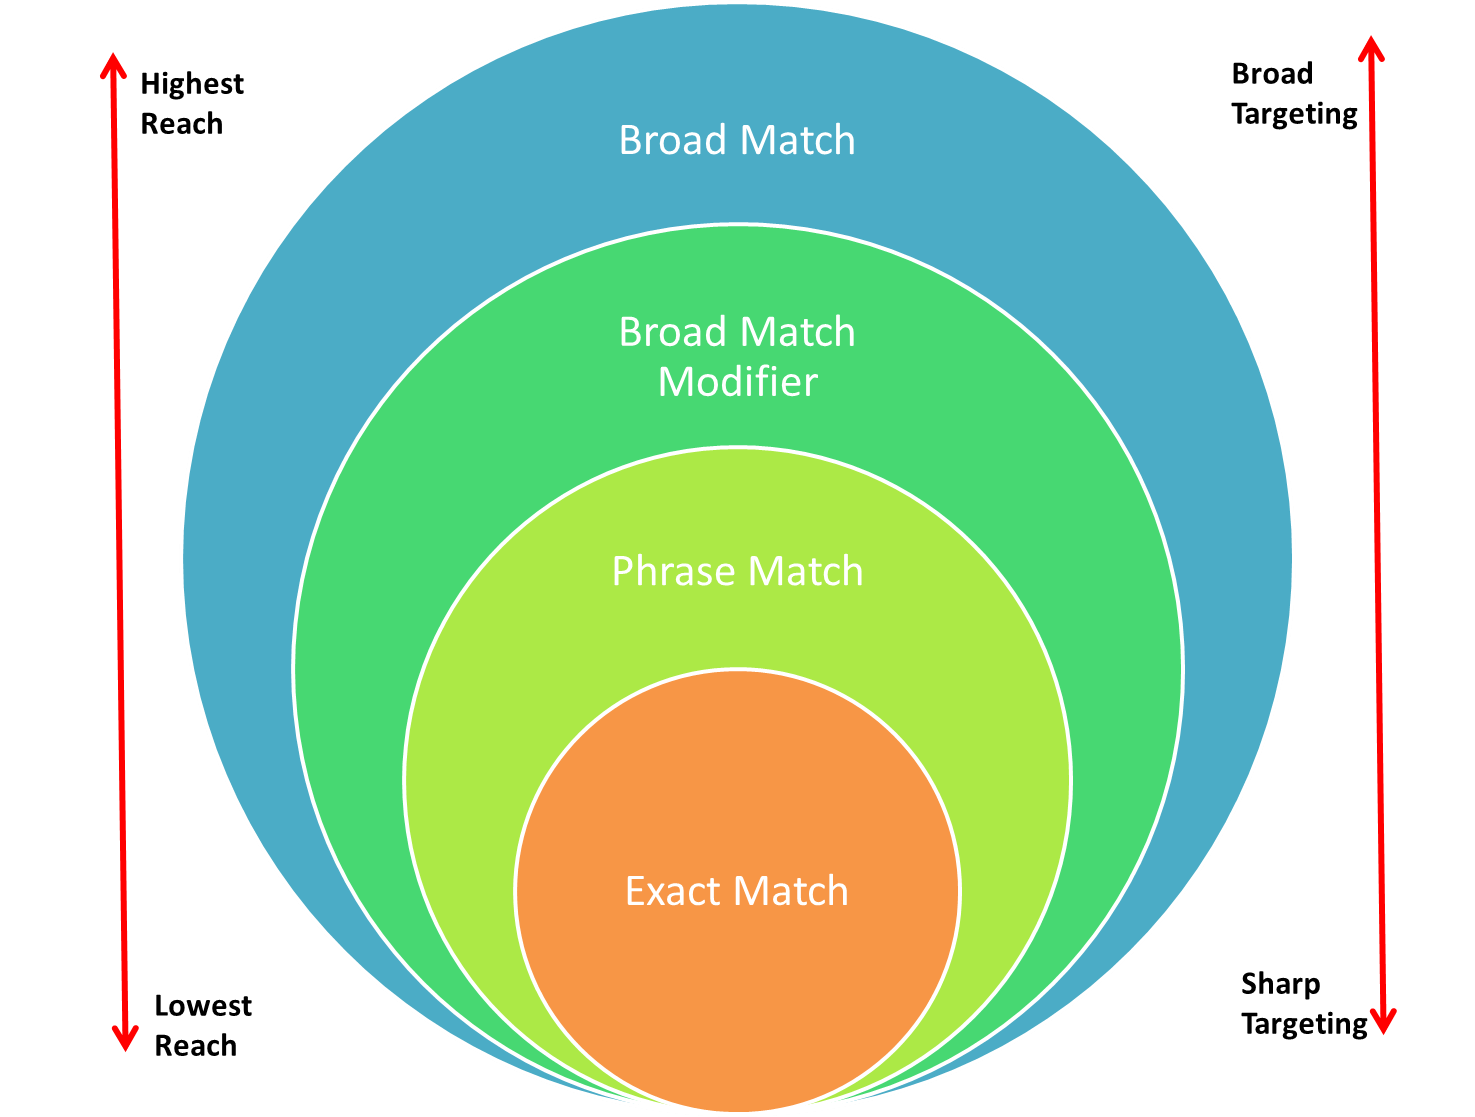 As you move from broad match to exact match, your targeting becomes sharper but your reach becomes lower.